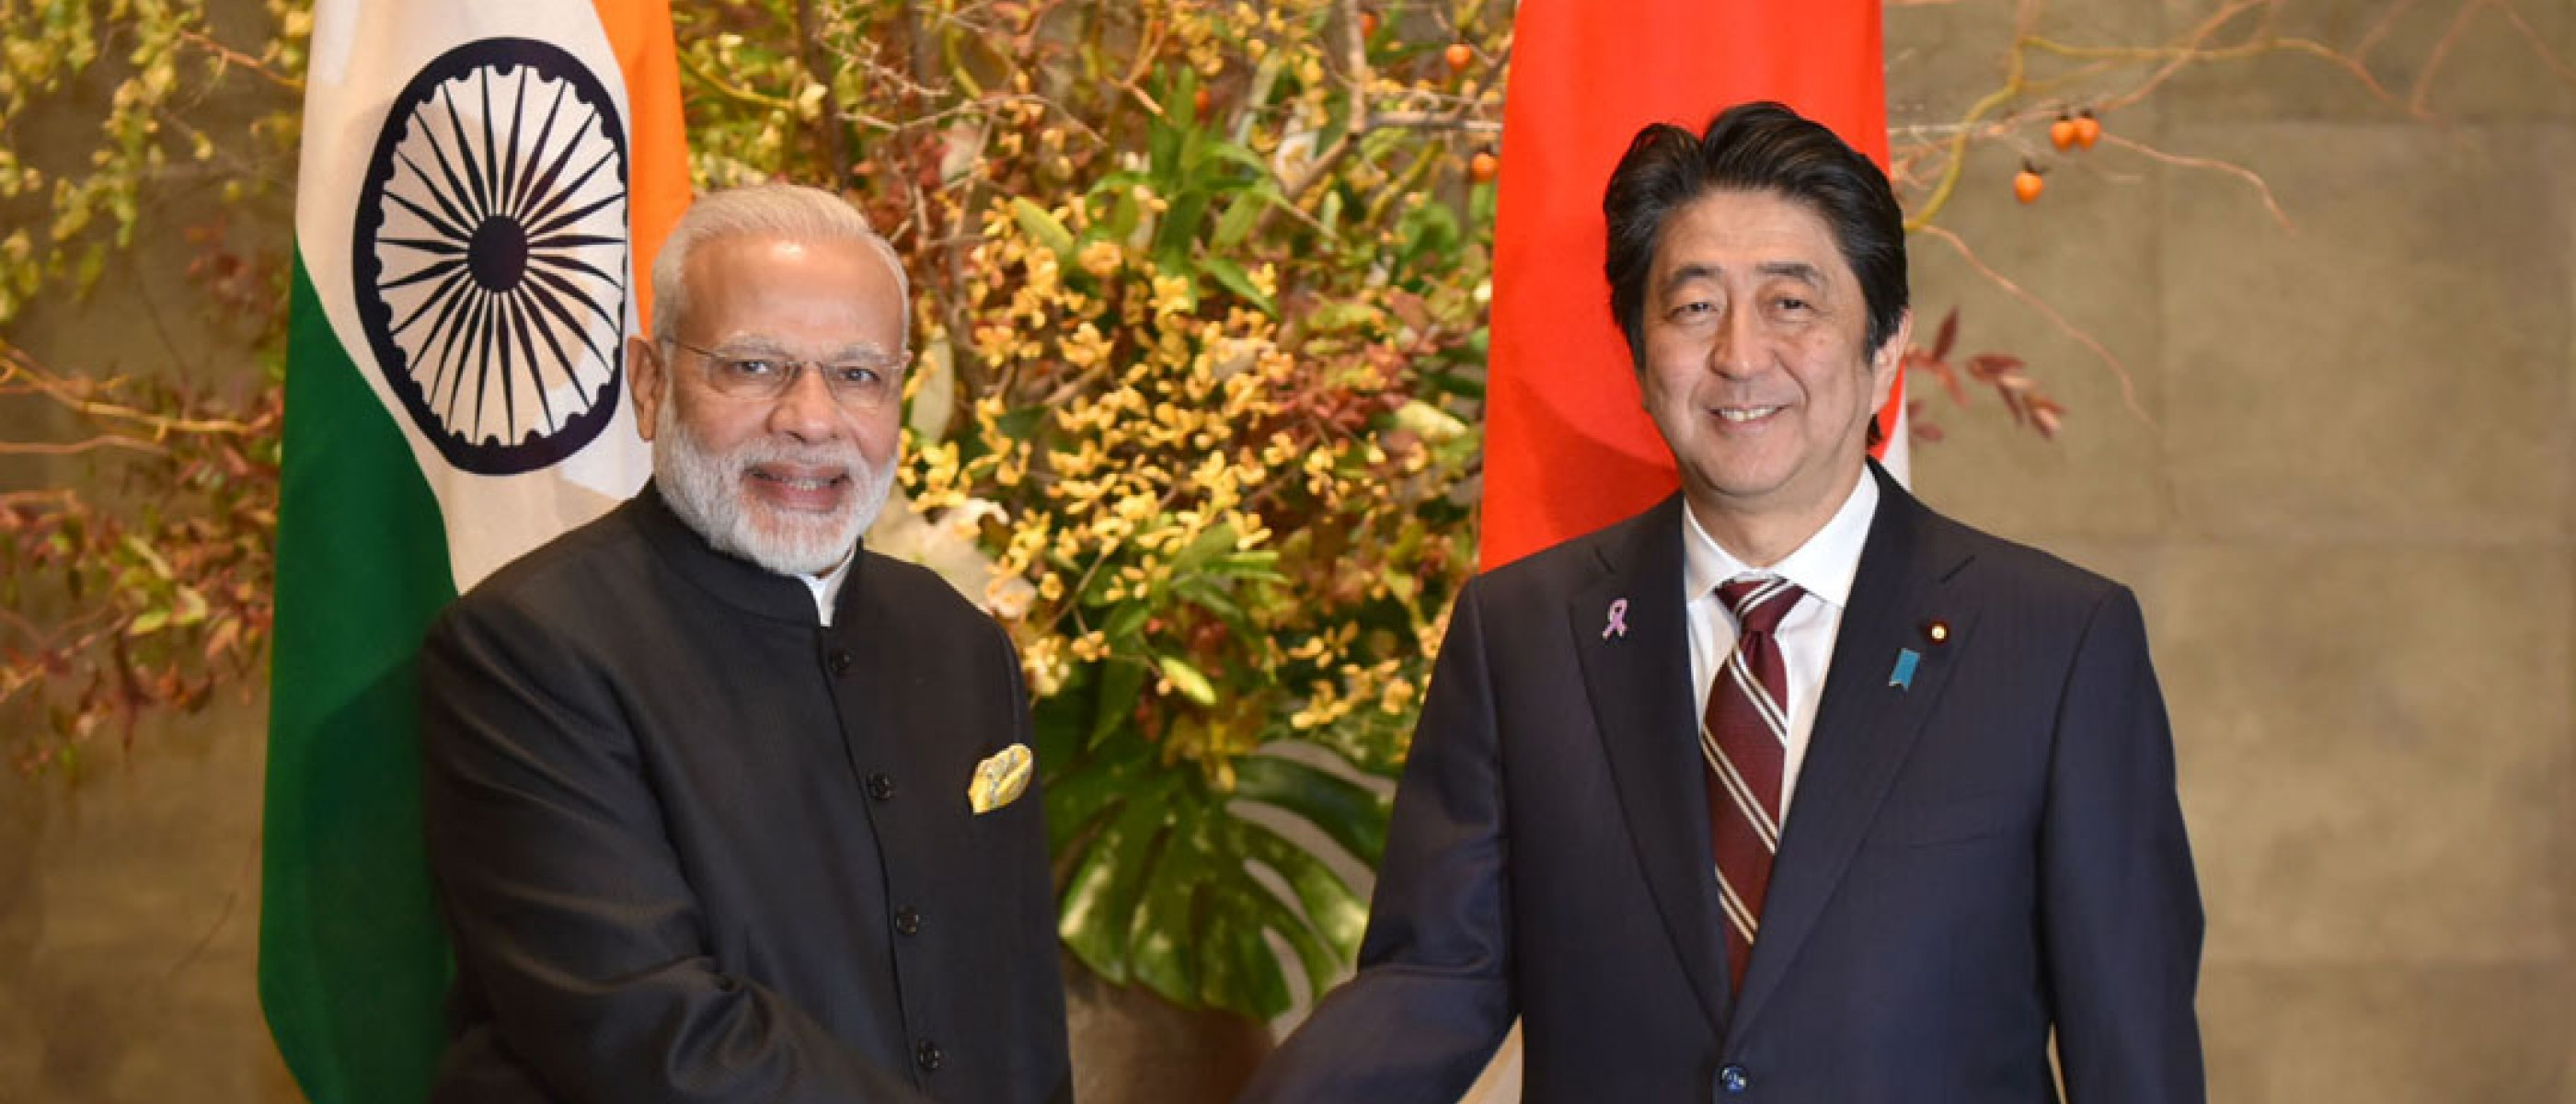 India-Japan Relations under Modi and Abe: Prospects and Challenges for a Novel Bilateral Asian Dynamic